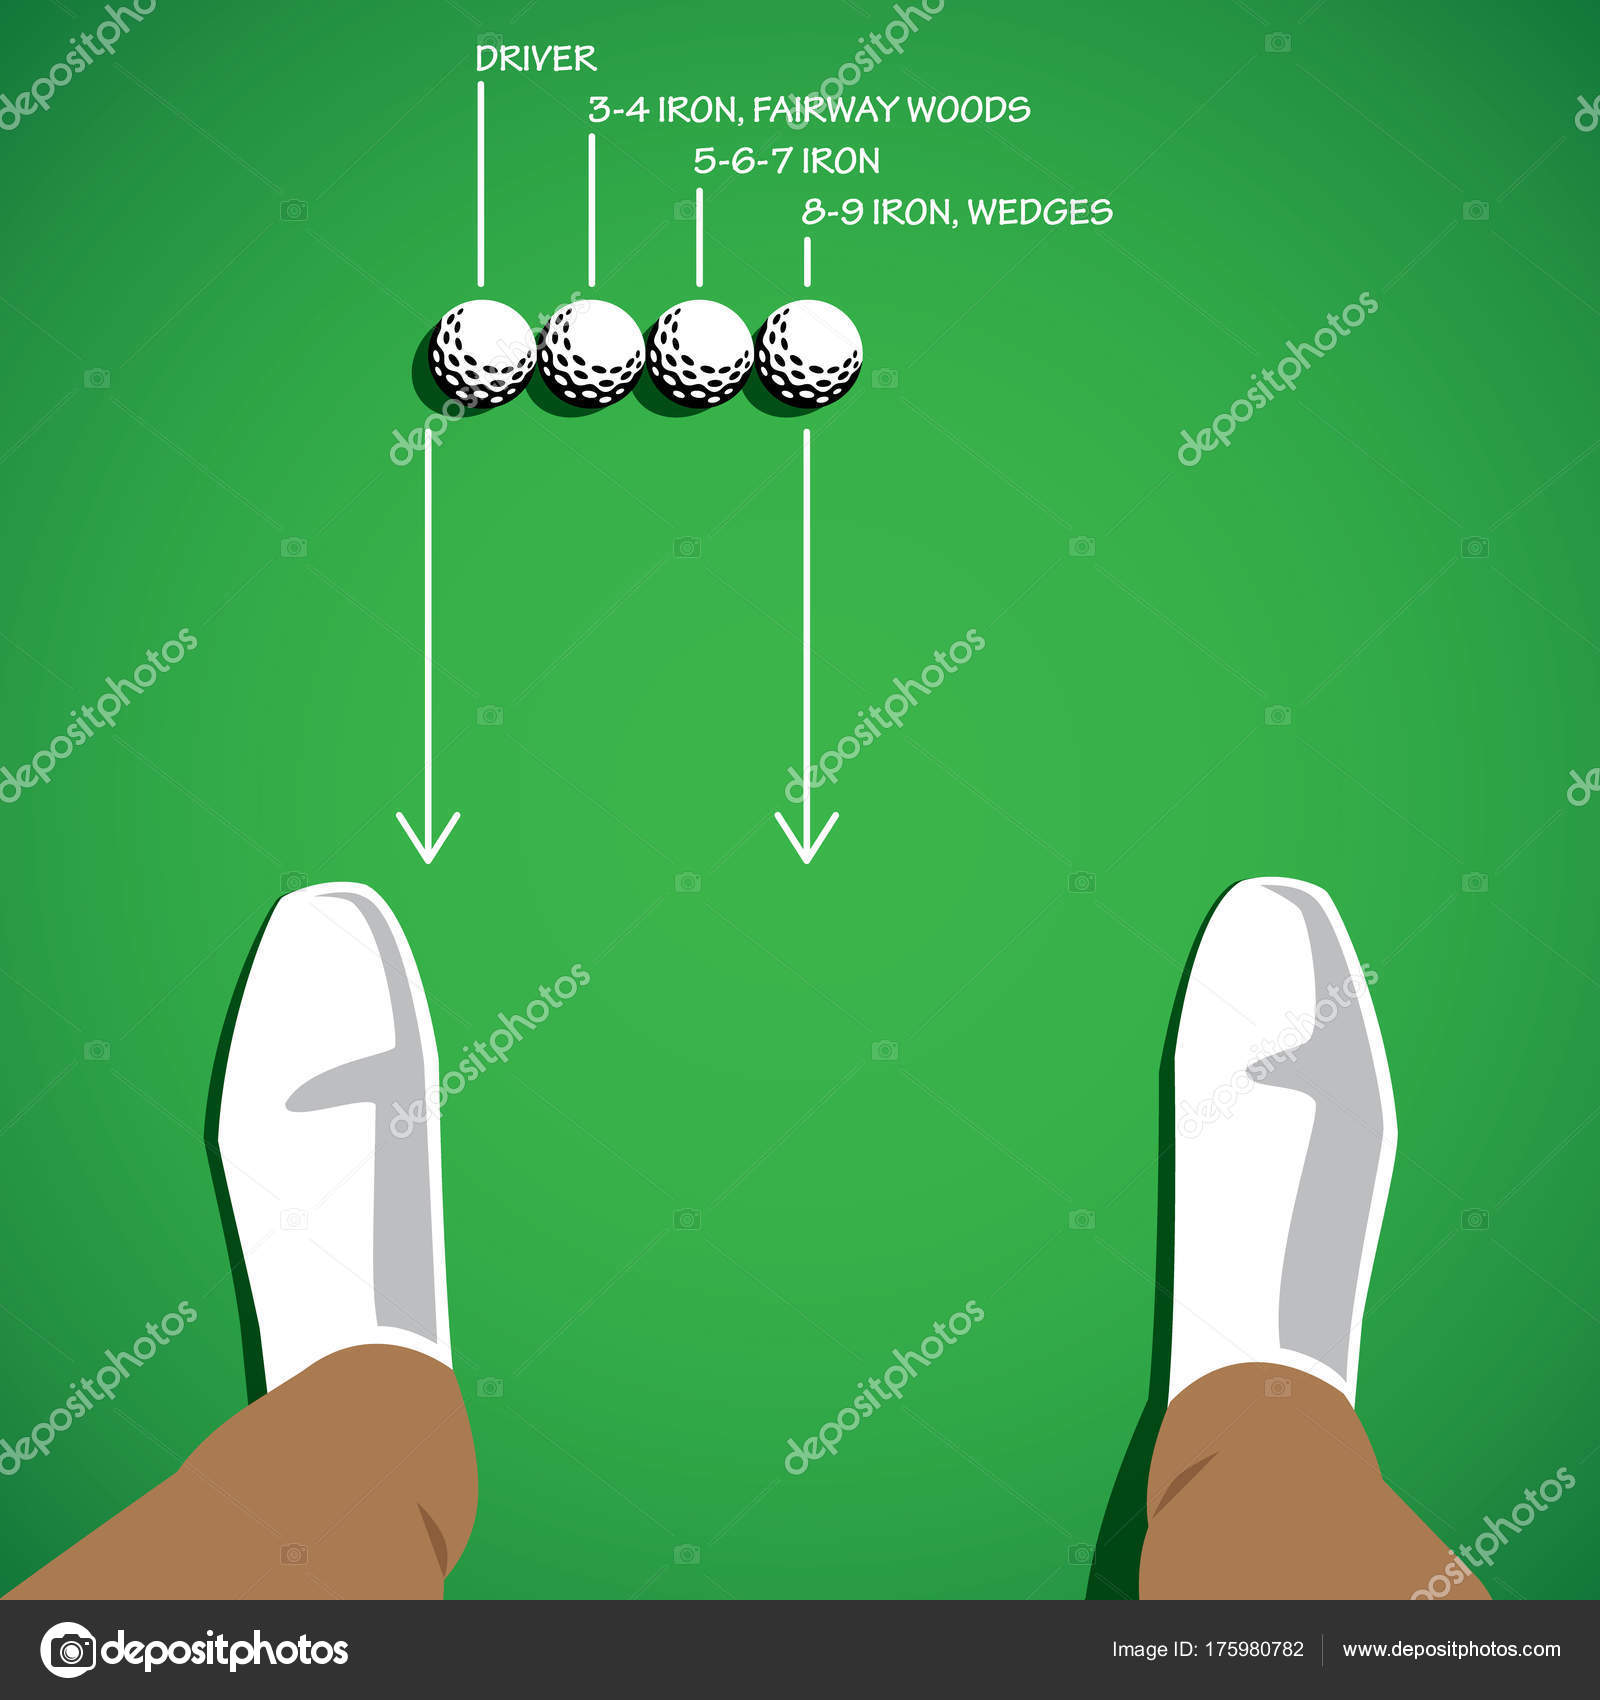 Golf Ball Set Up Position For Each Club Driver Fairway Woods Irons And Wedges Practice Training Vector Graphic Design By Mantinov